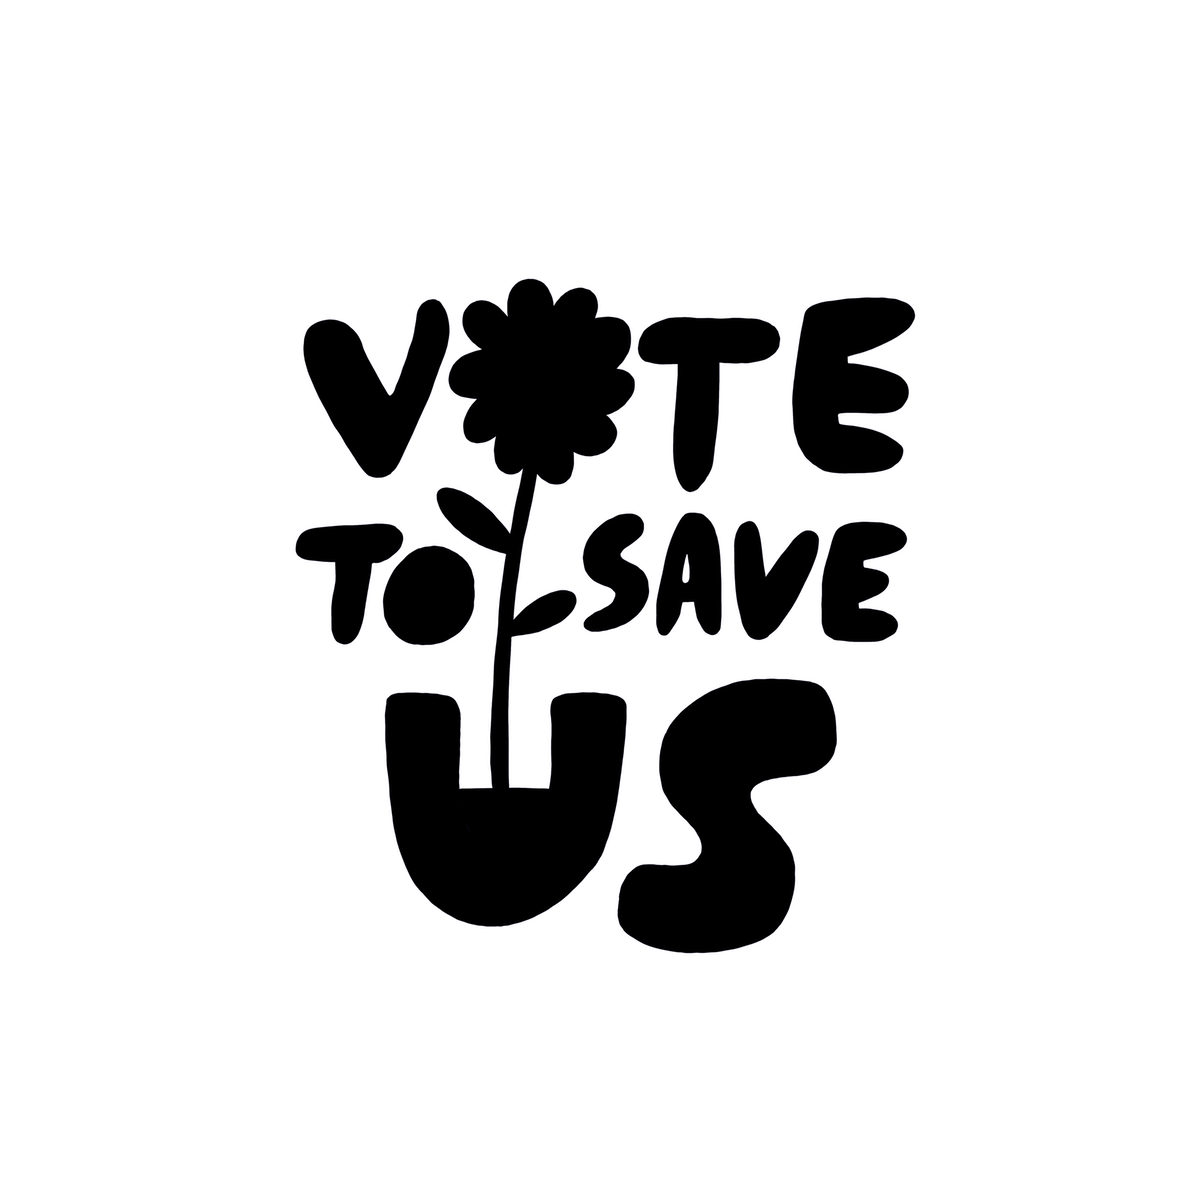 VOTE TO SAVE US - Design The Iconic 2020 Get Out The Democratic Vote Art